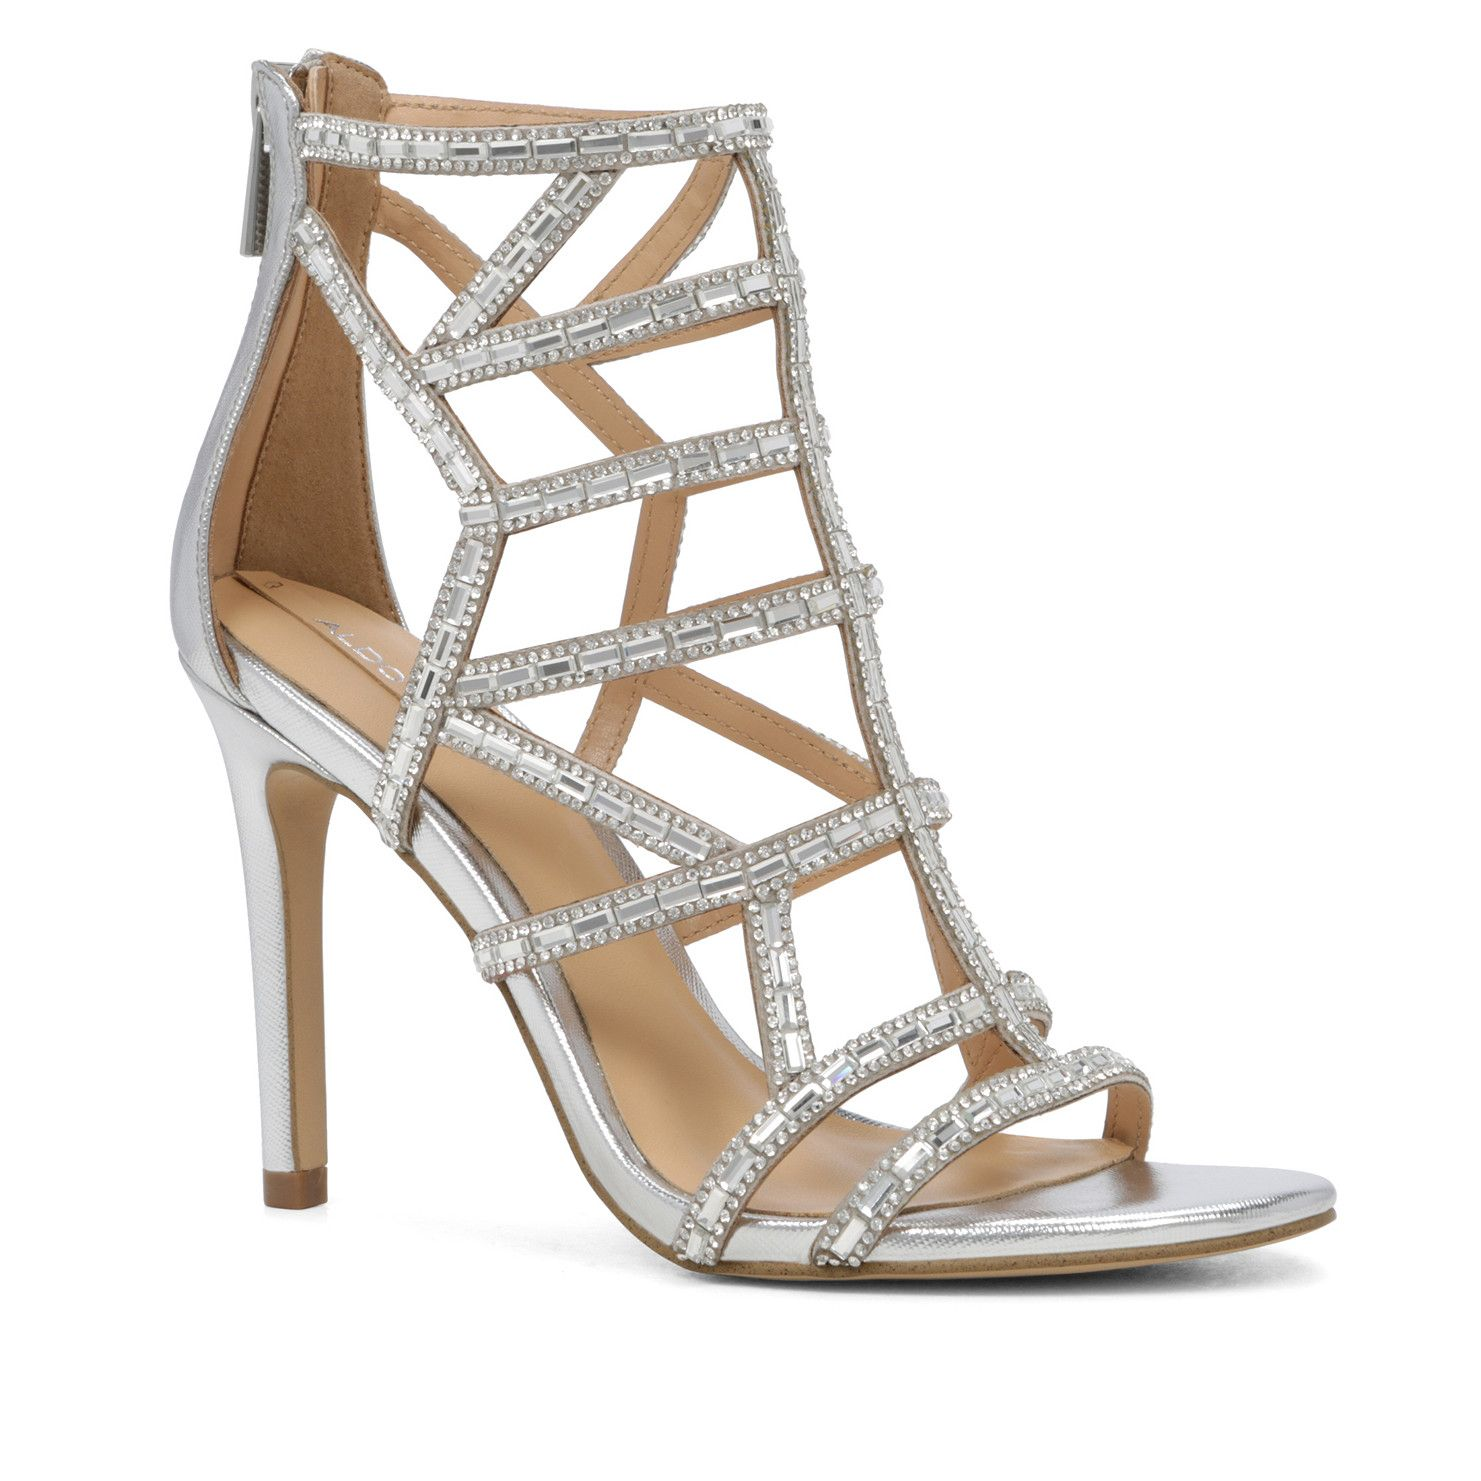 Norta High-Heel Sandals | Women's Sandals | ALDOShoes.com Not these but an idea of what I may get